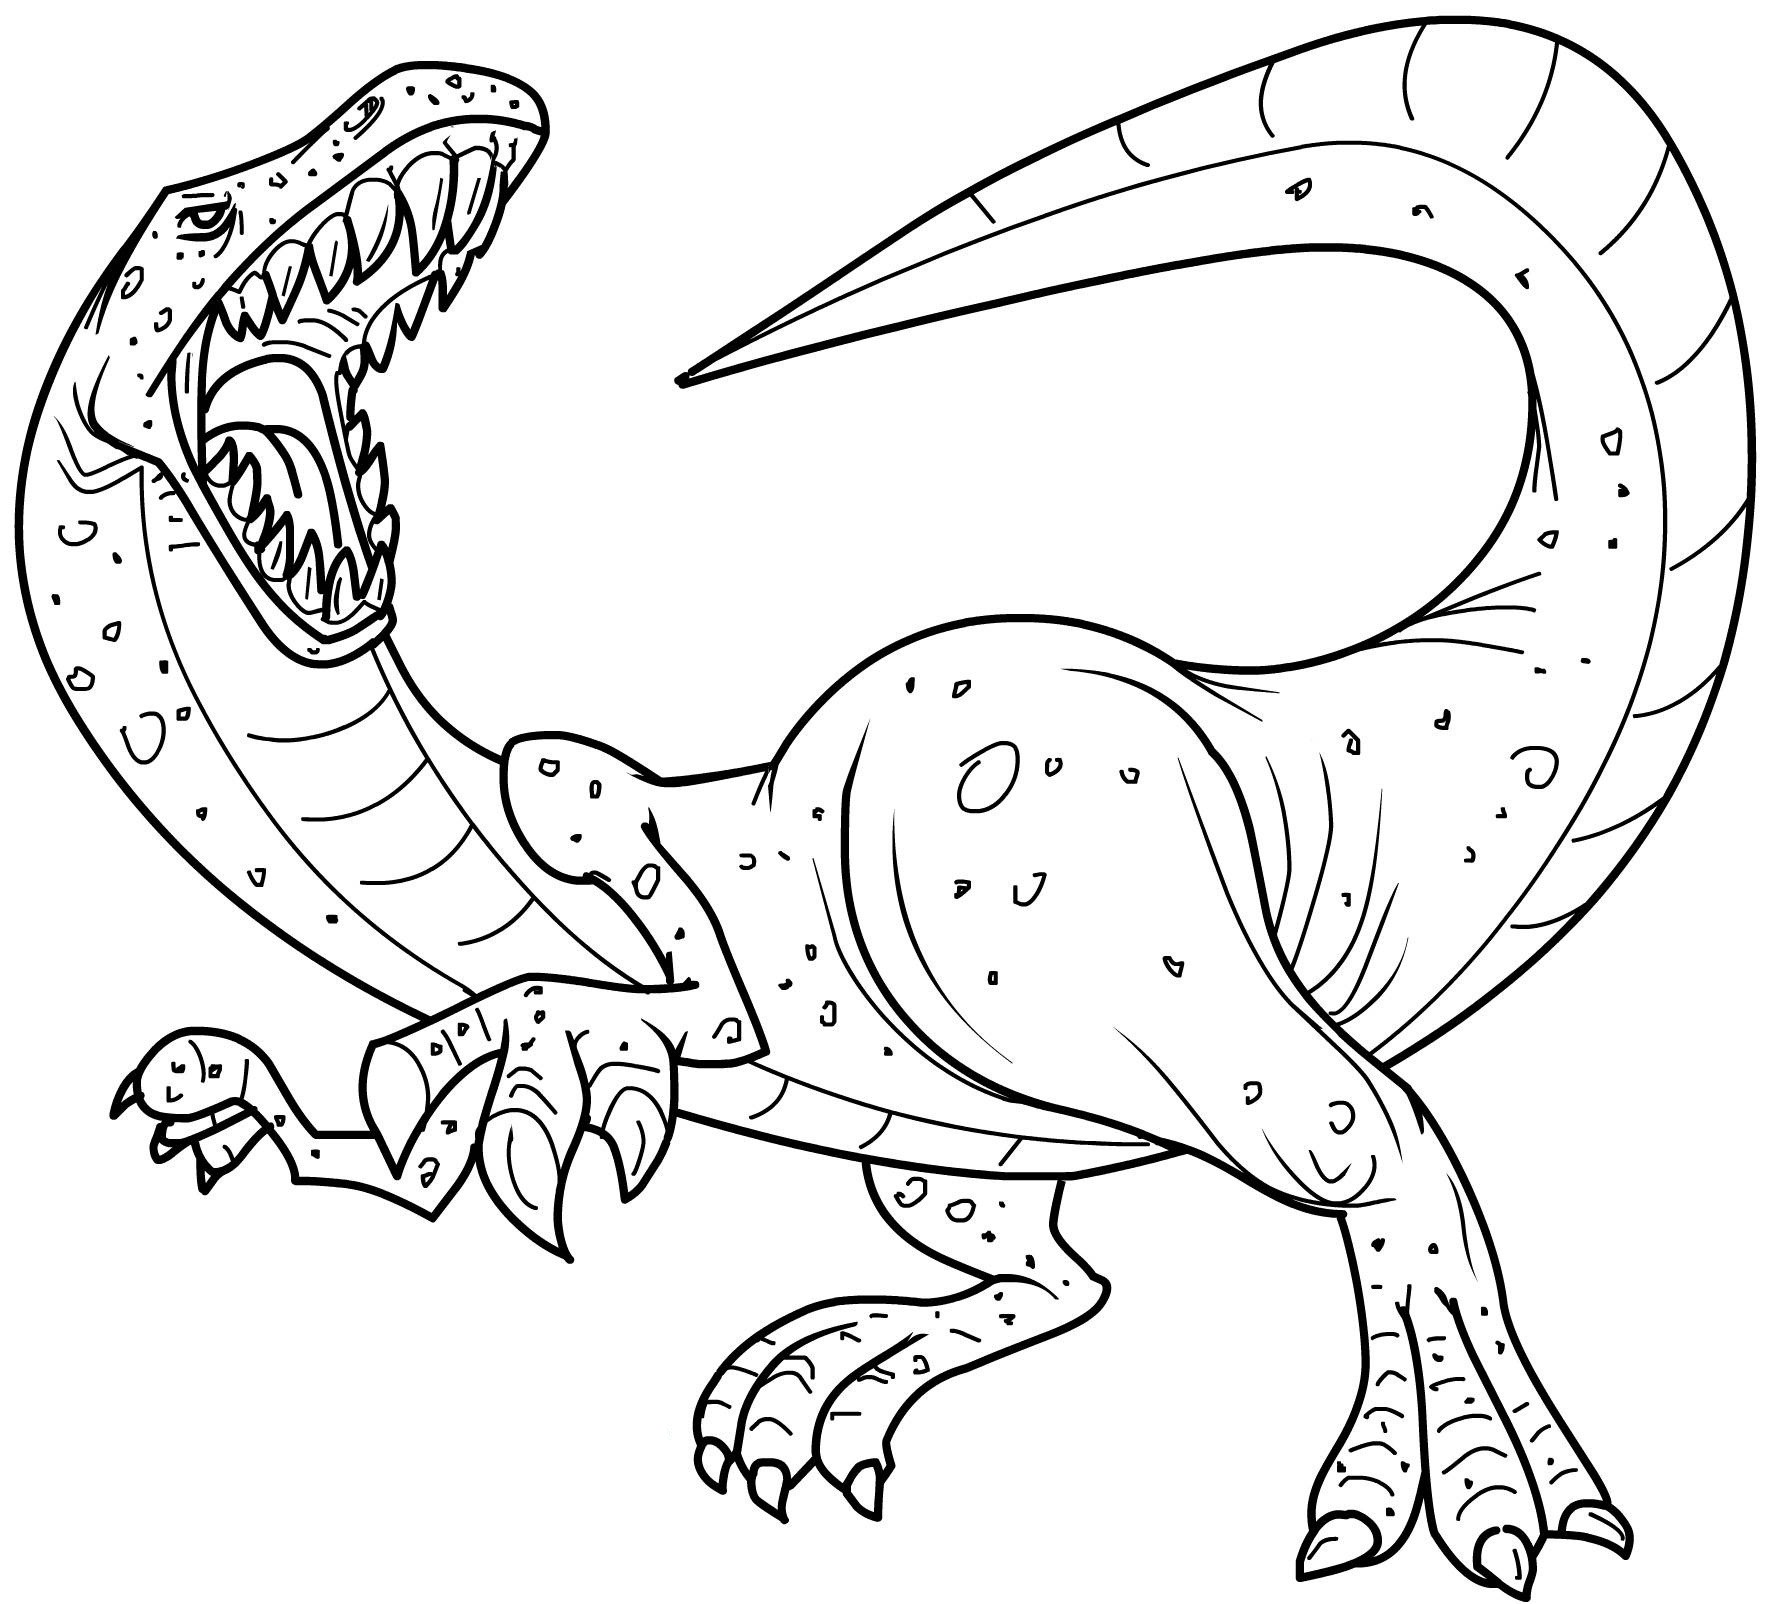 Dinosaur coloring in pictures - Dinosaurs Coloring Pages Free Printables